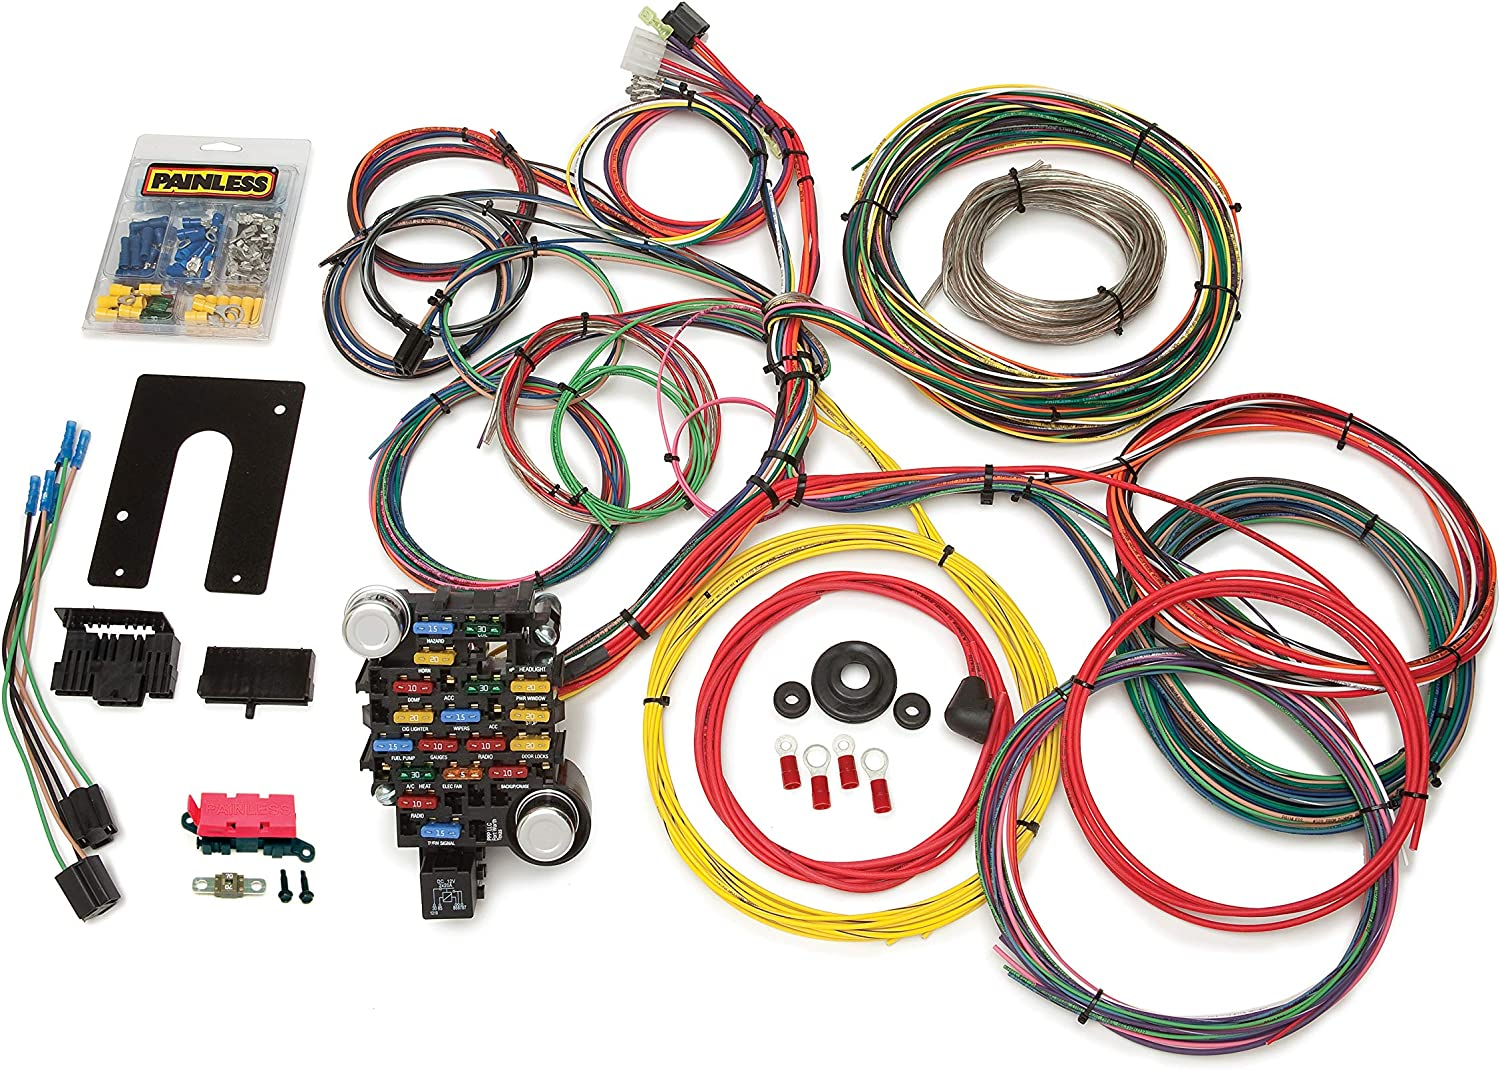 painless wiring harness and chassis amazon com painless performance 10203 classic plus customizable  amazon com painless performance 10203